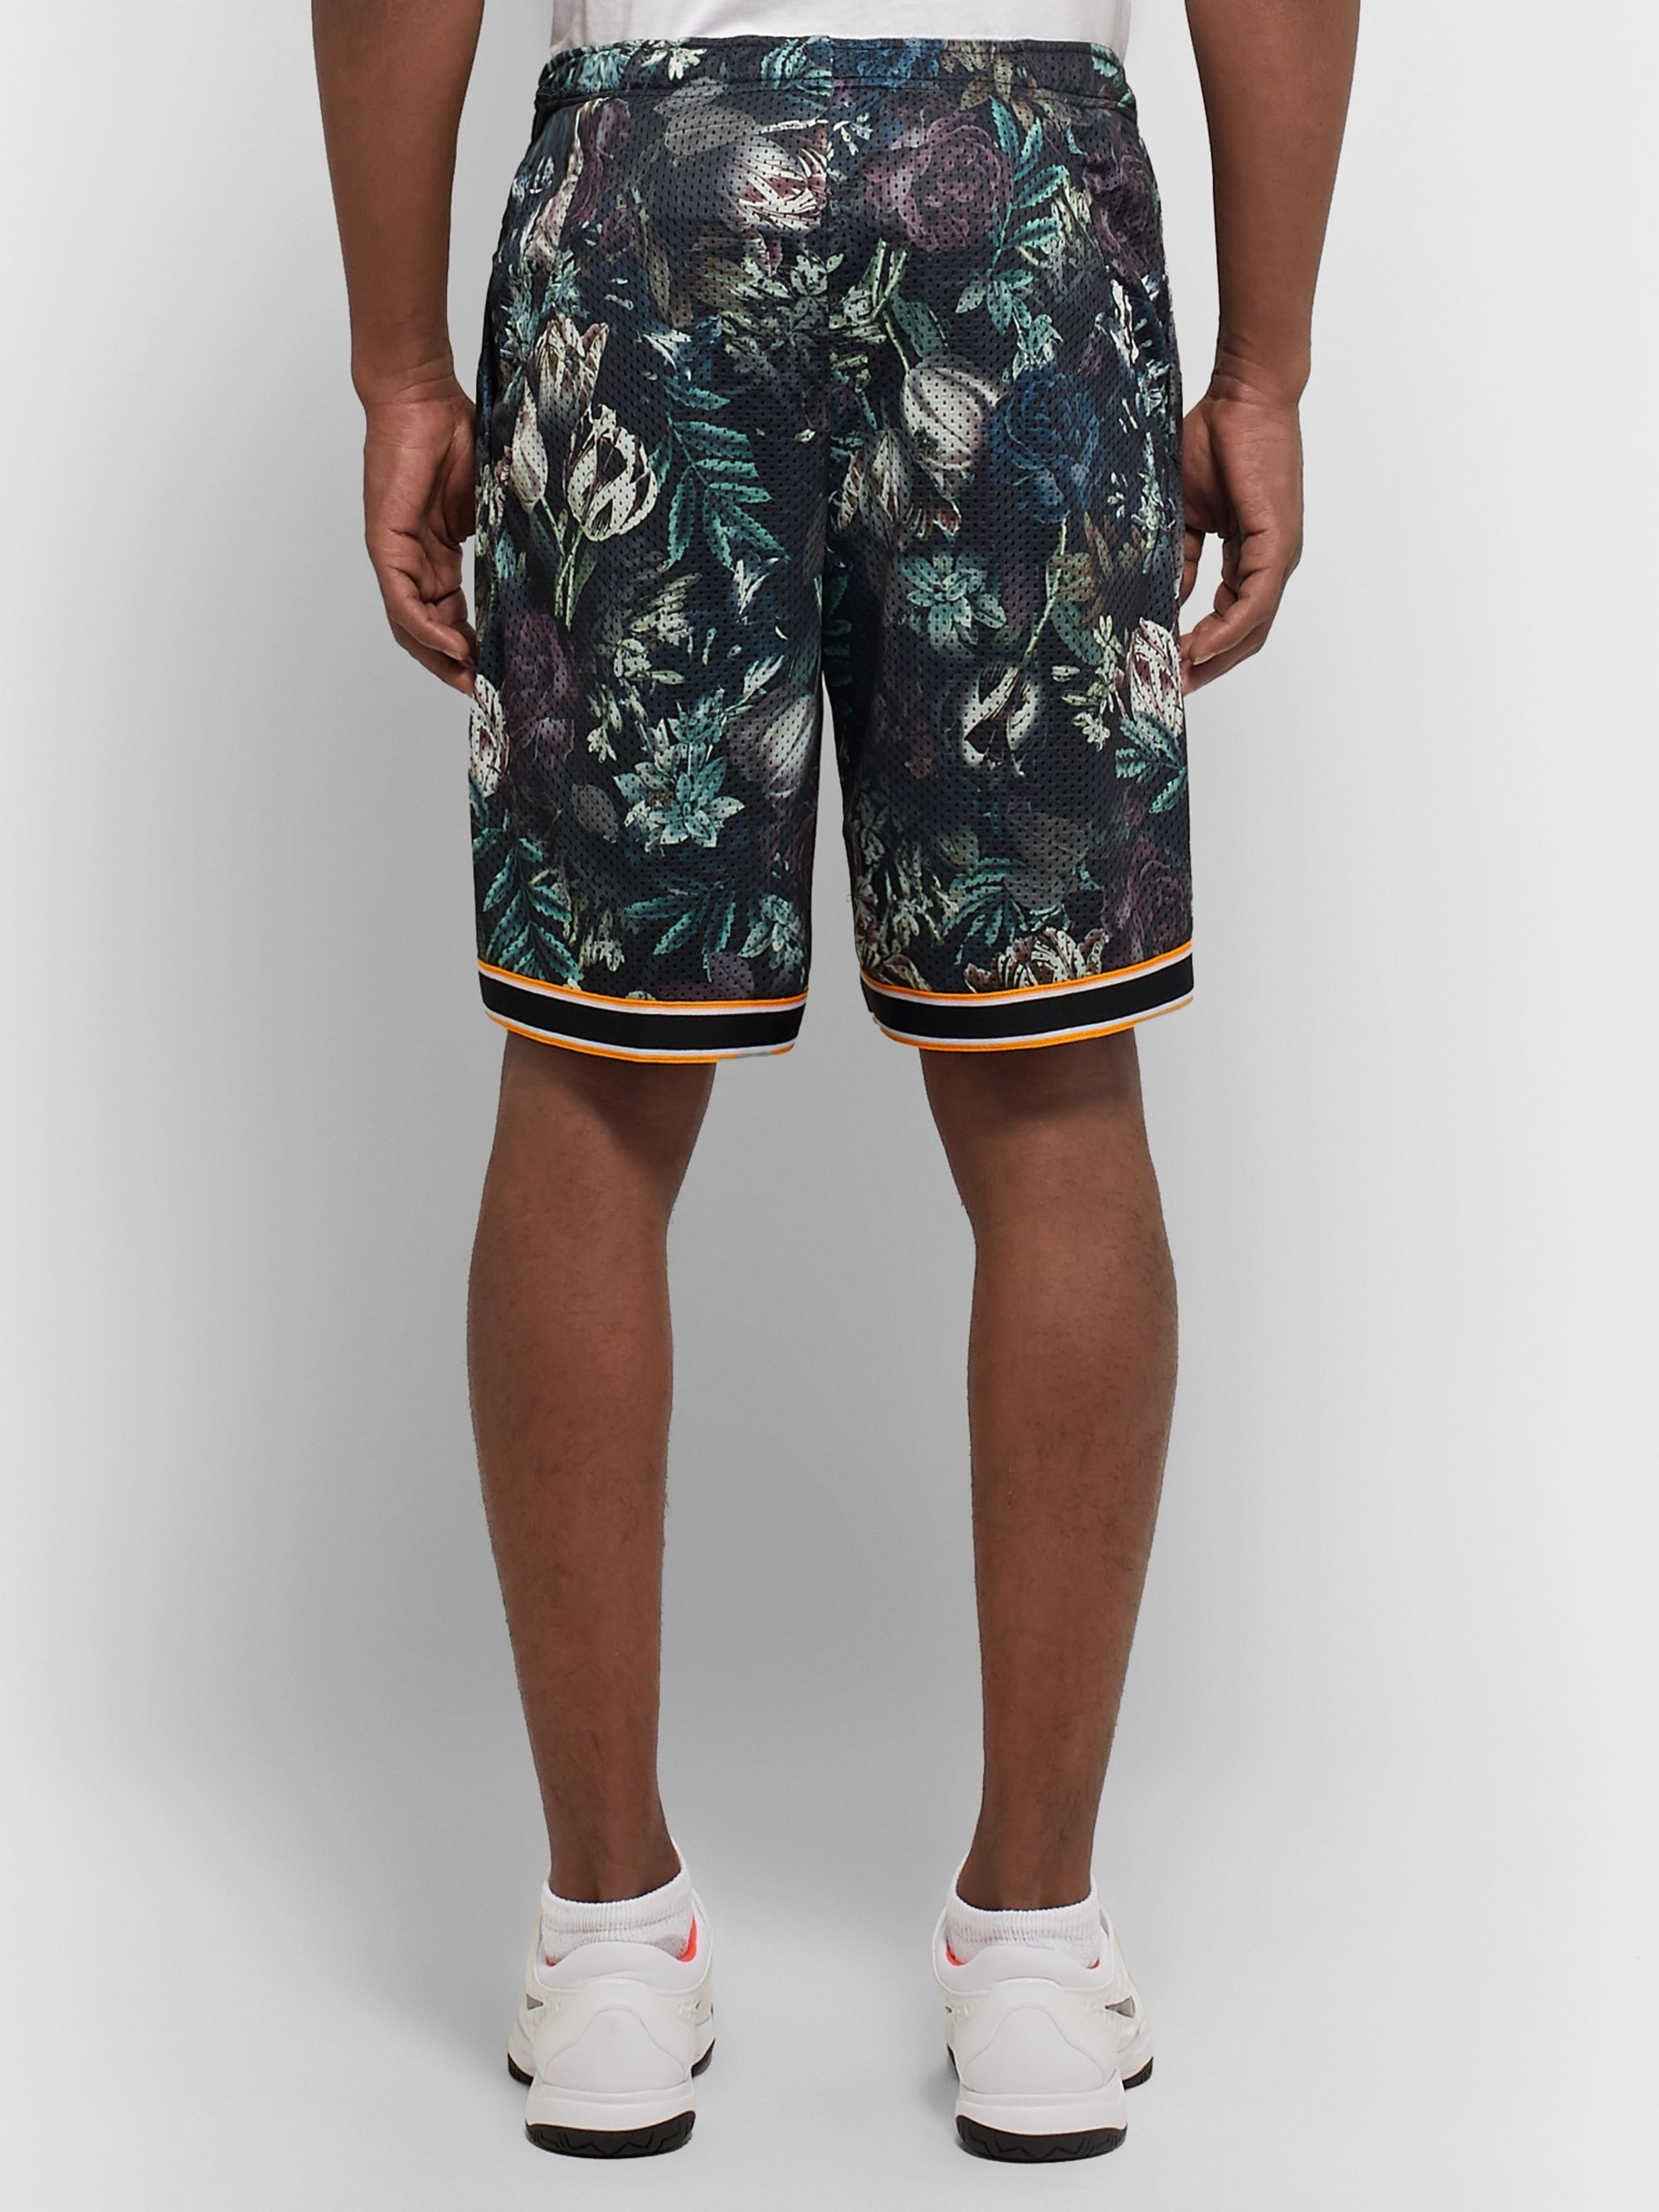 Nike Tennis NikeCourt Flex Ace Printed Dri-FIT Mesh Tennis Shorts